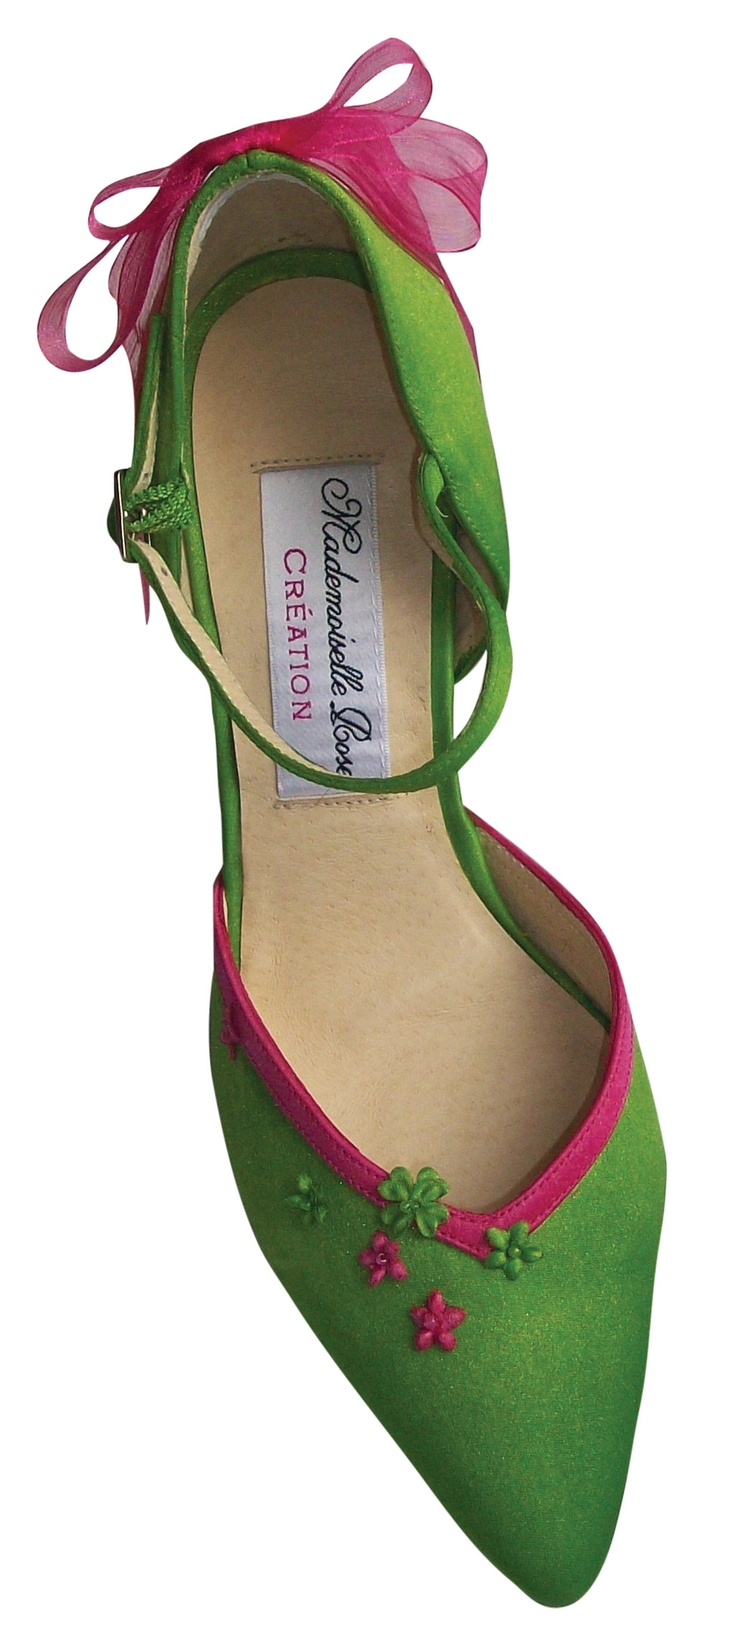 Chaussures vertes et  noeuds roses  chaussures de mariages mademoiselle Rose